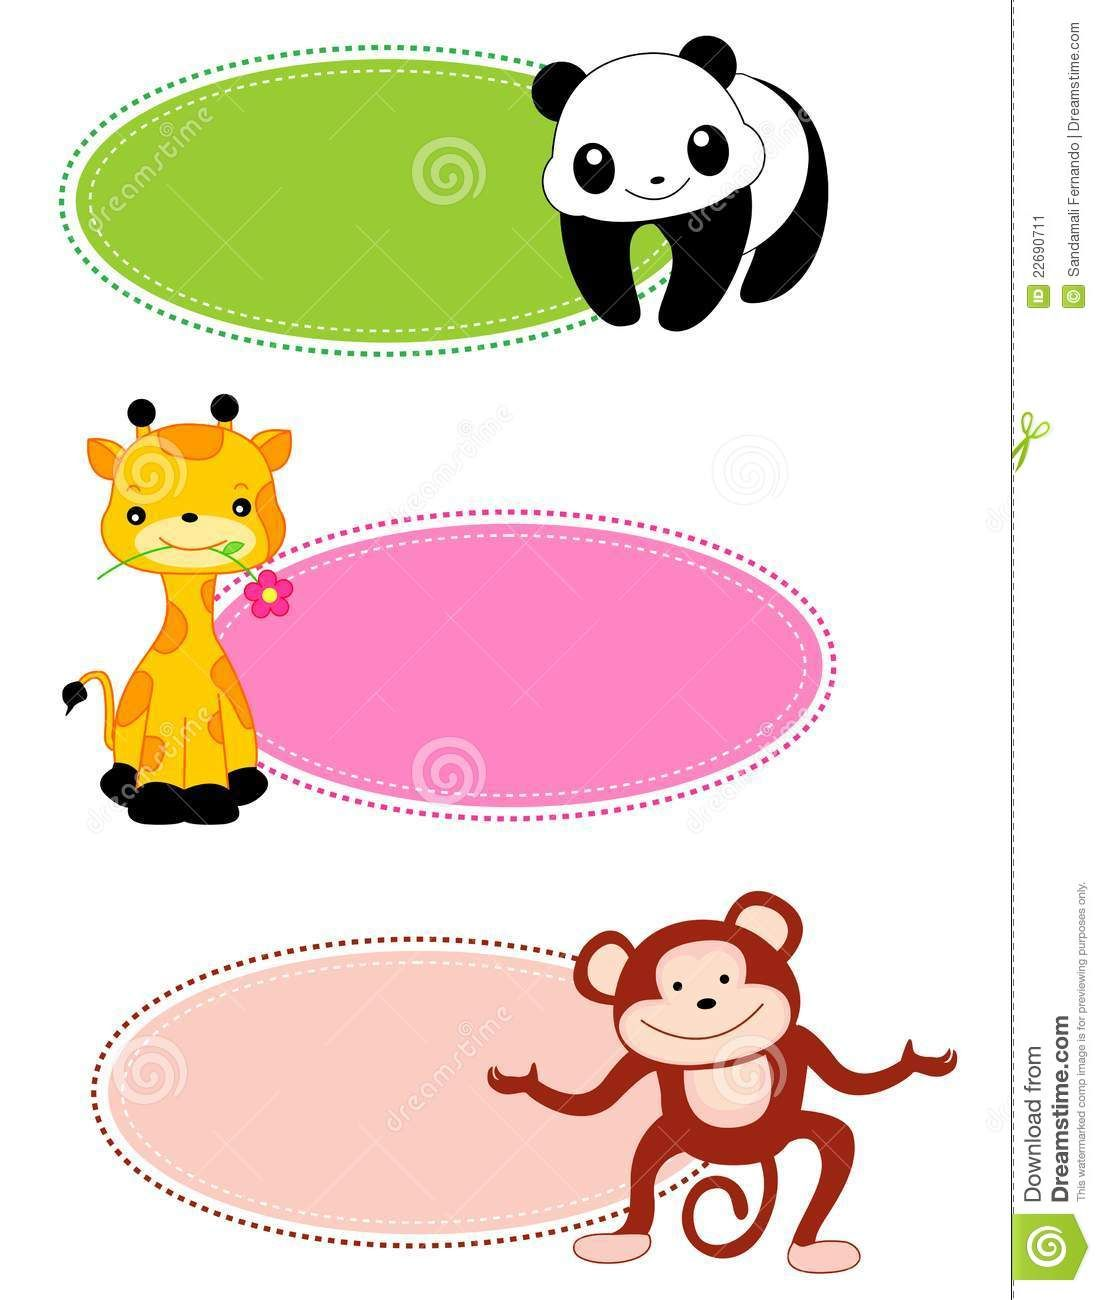 free cute school clip art borders and frames animal frame lable